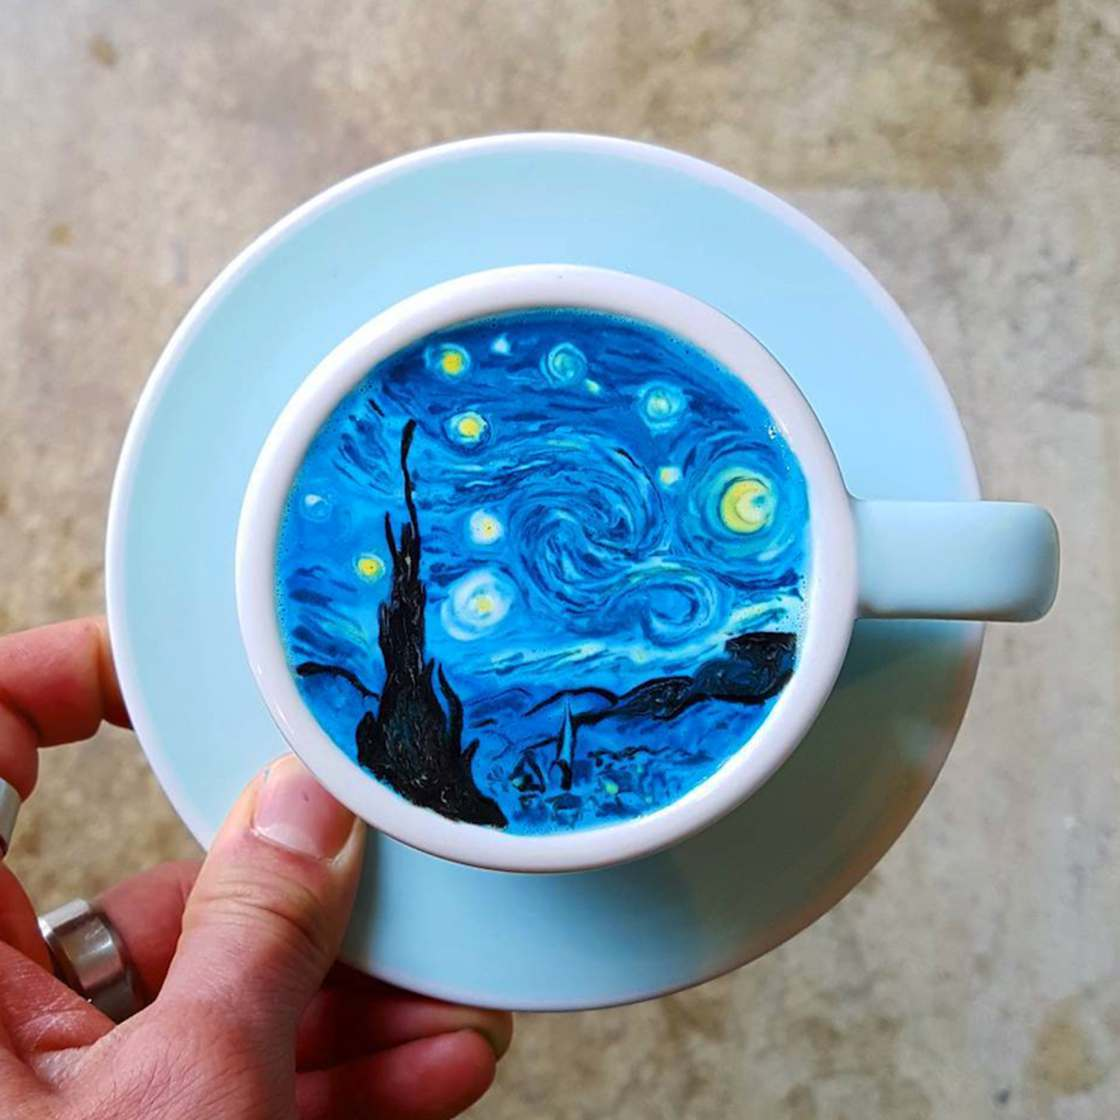 Korean Barista Turns Cups of Coffee into Incredible Works